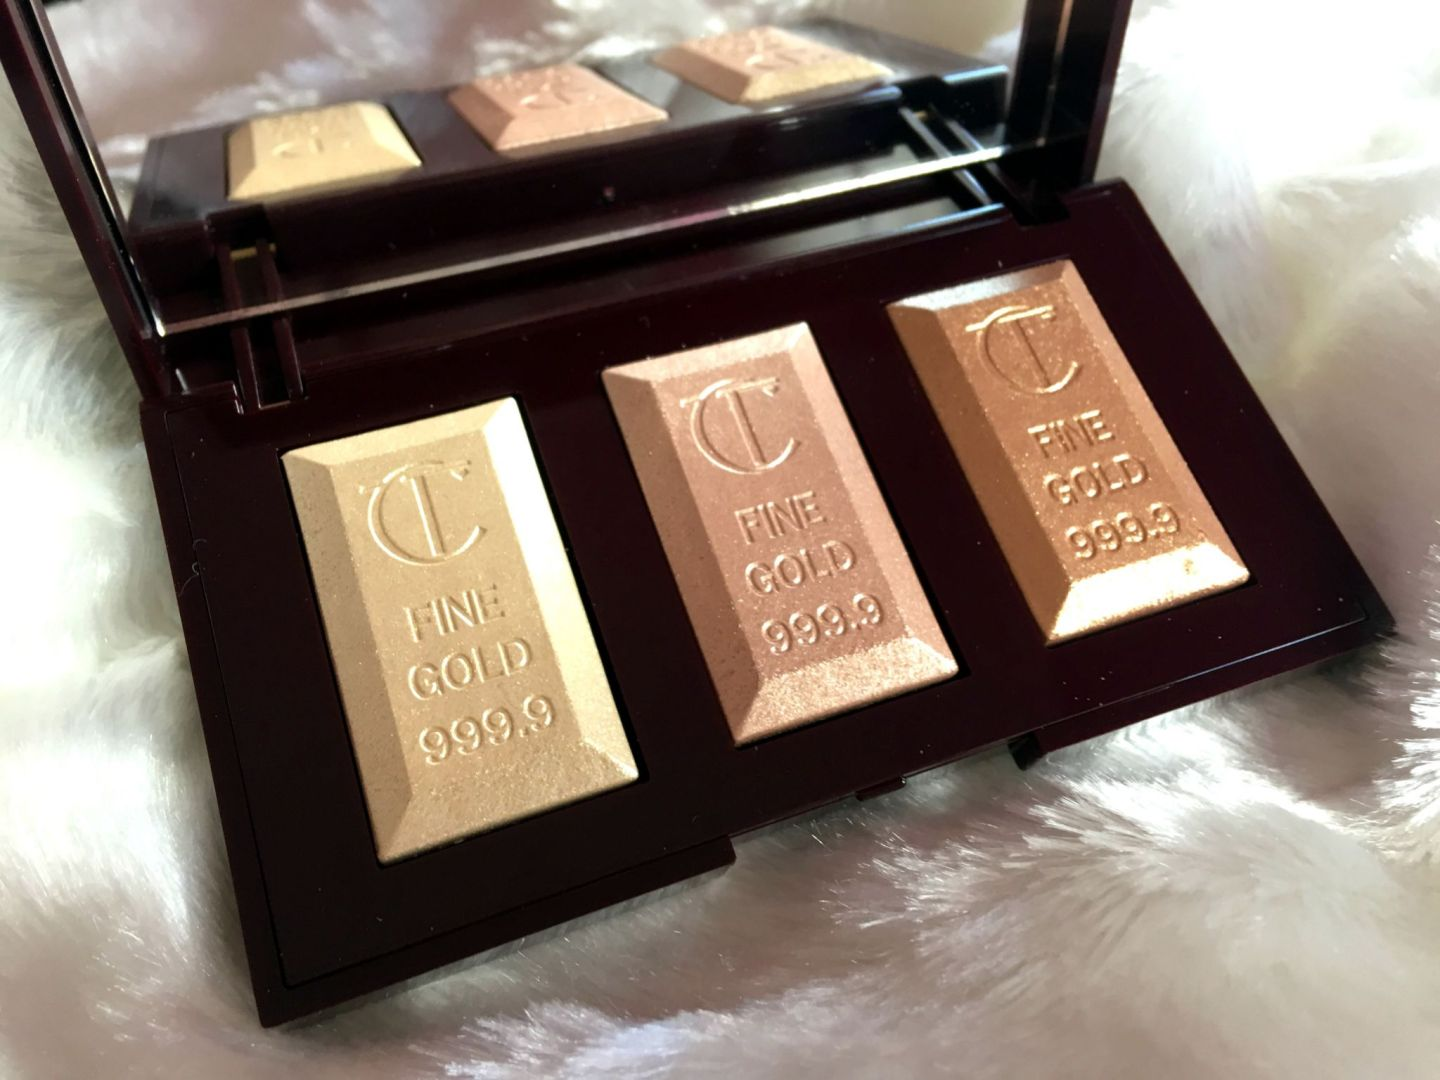 Charlotte Tilbury Bar of Gold Palette Musings of a Makeup Junkie (8)